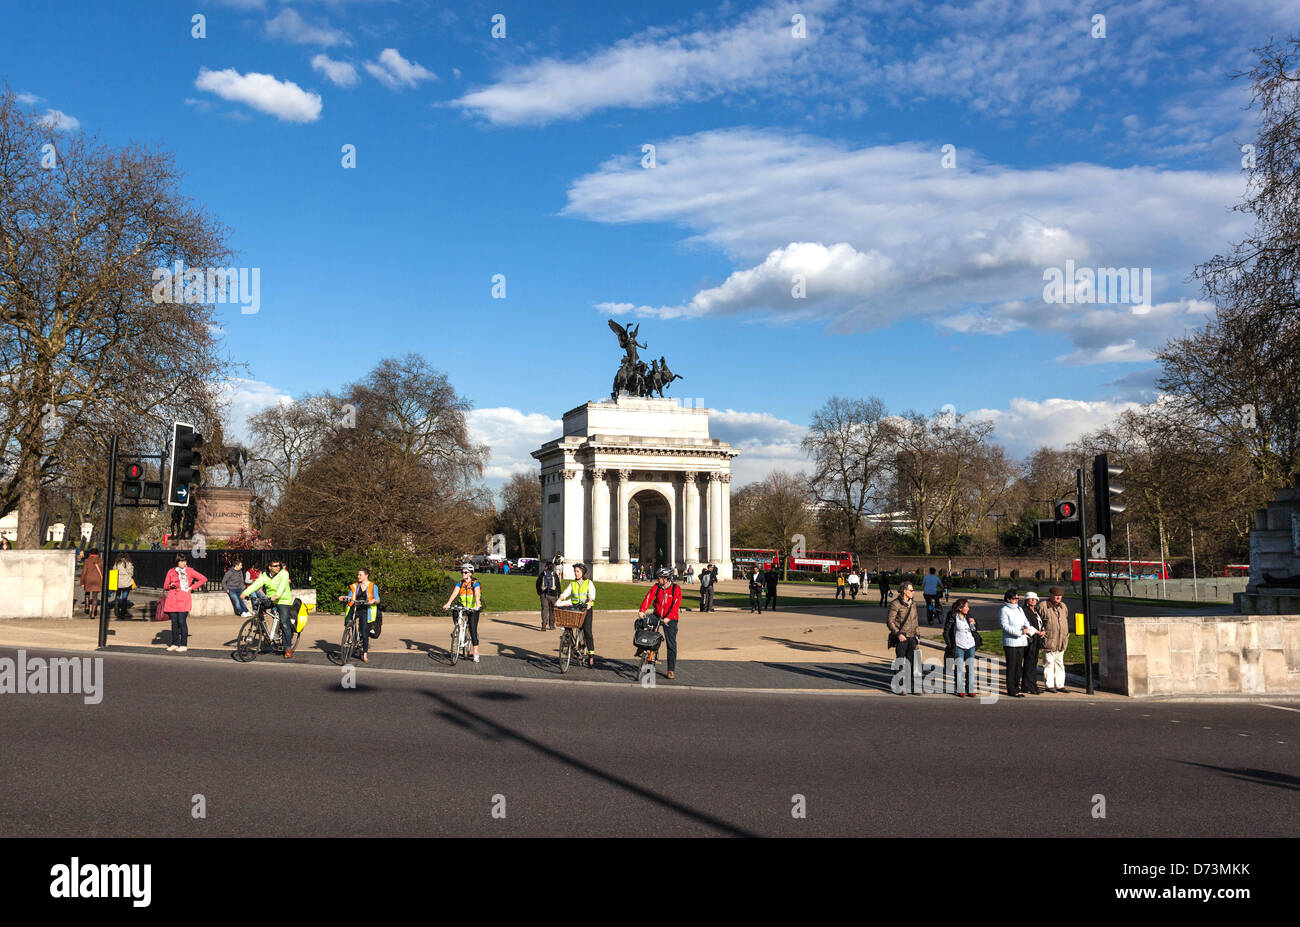 Cyclist and pedestrians waiting to cross the road at Hyde Park Corner, London, England, UK - Stock Image